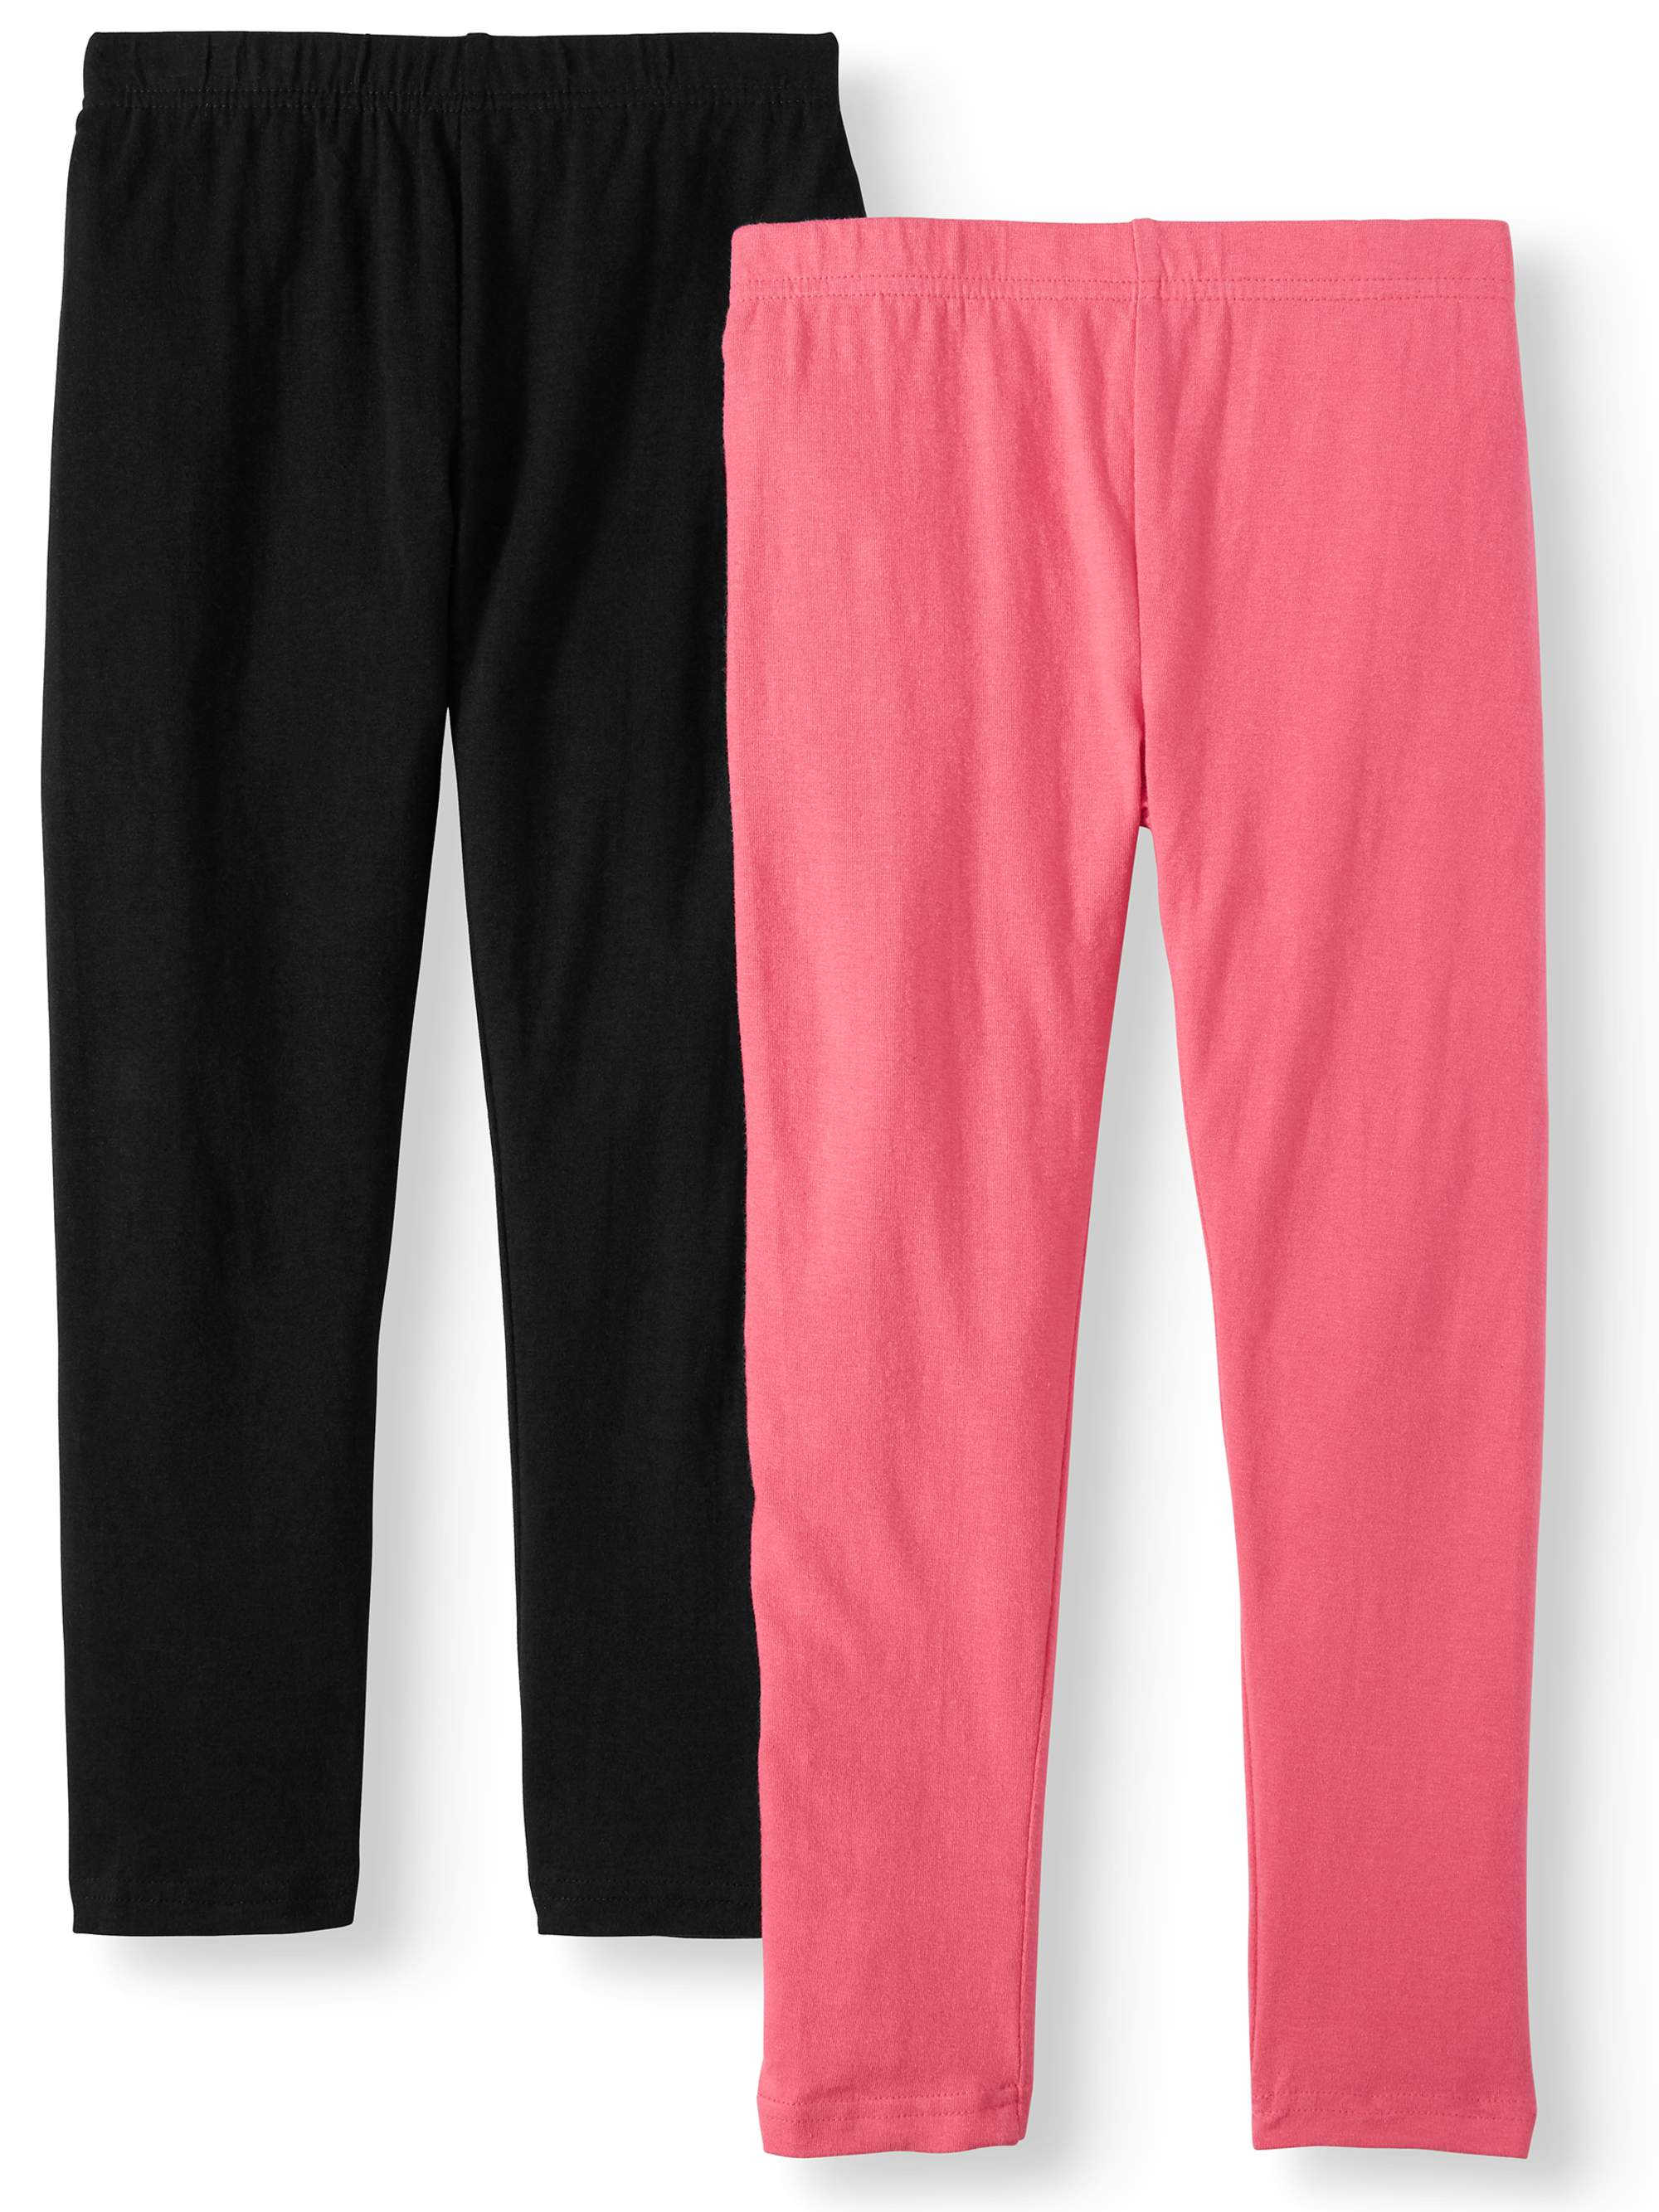 Solid Leggings, 2-Pack (Little Girls & Big Girls)